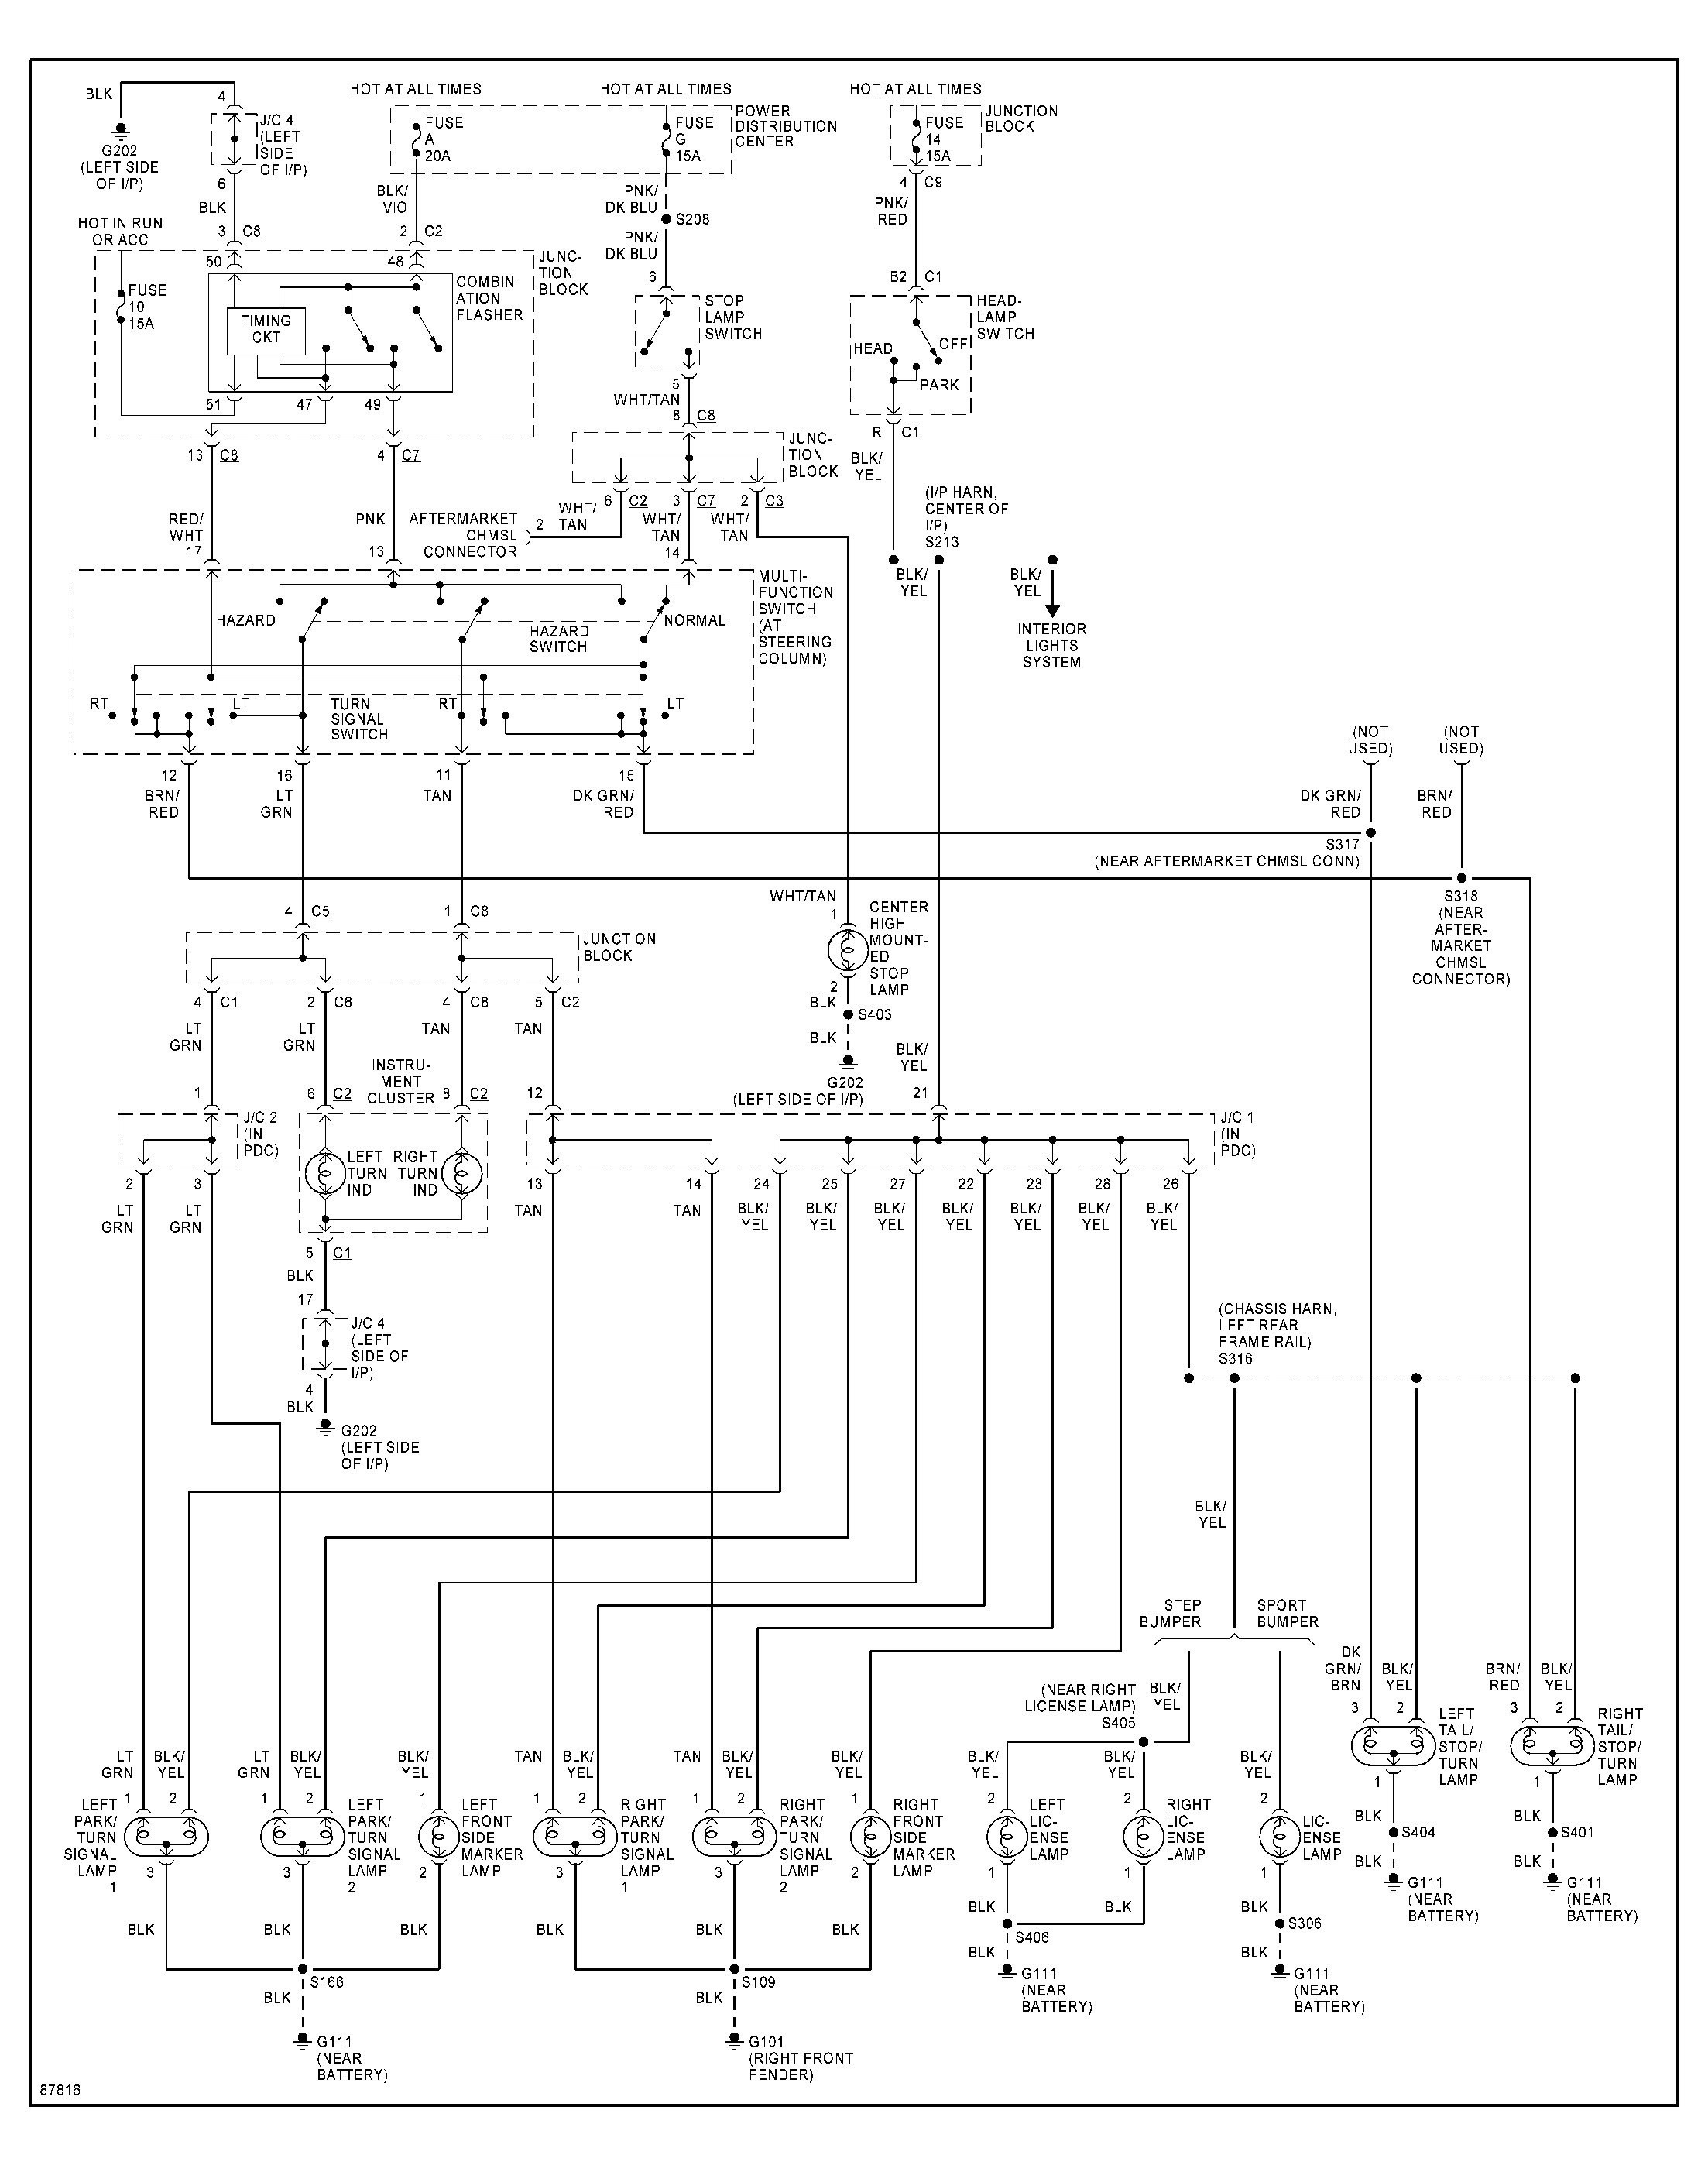 2004 Dodge Durango Engine Diagram 2002 Dodge Durango Engine Diagram Worksheet and Wiring Diagram • Of 2004 Dodge Durango Engine Diagram